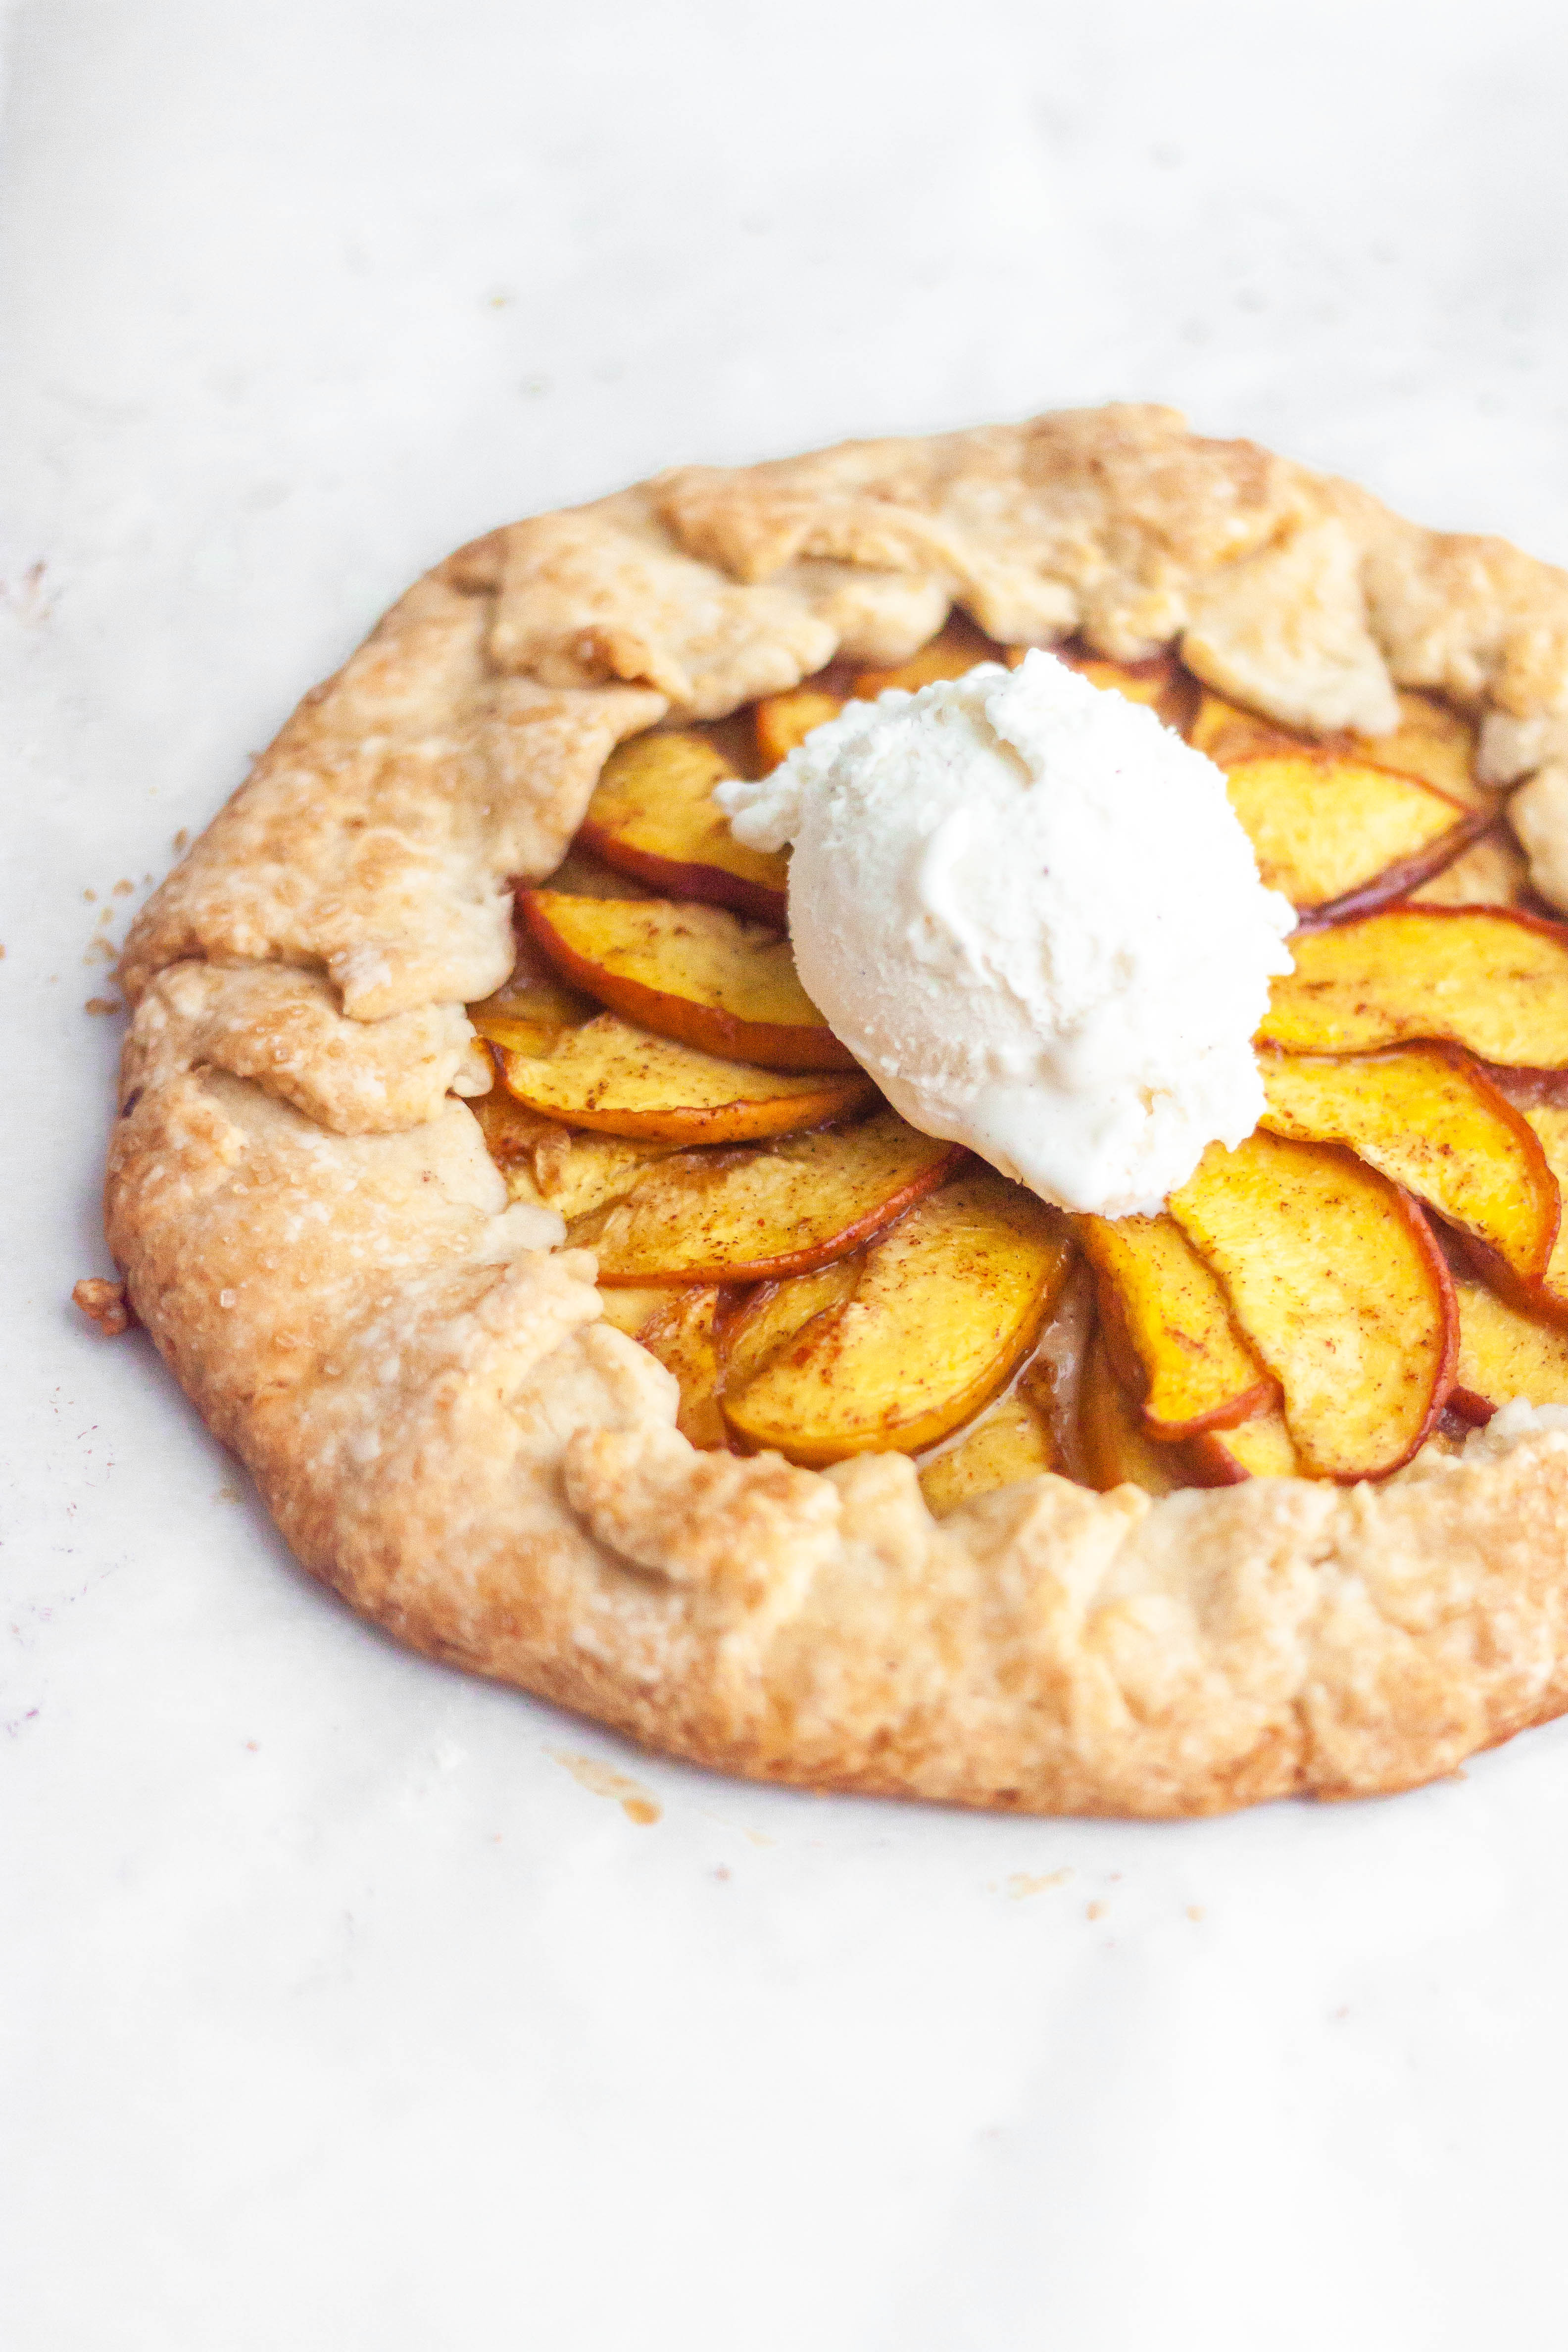 Summer peach galette with a scoop of ice cream